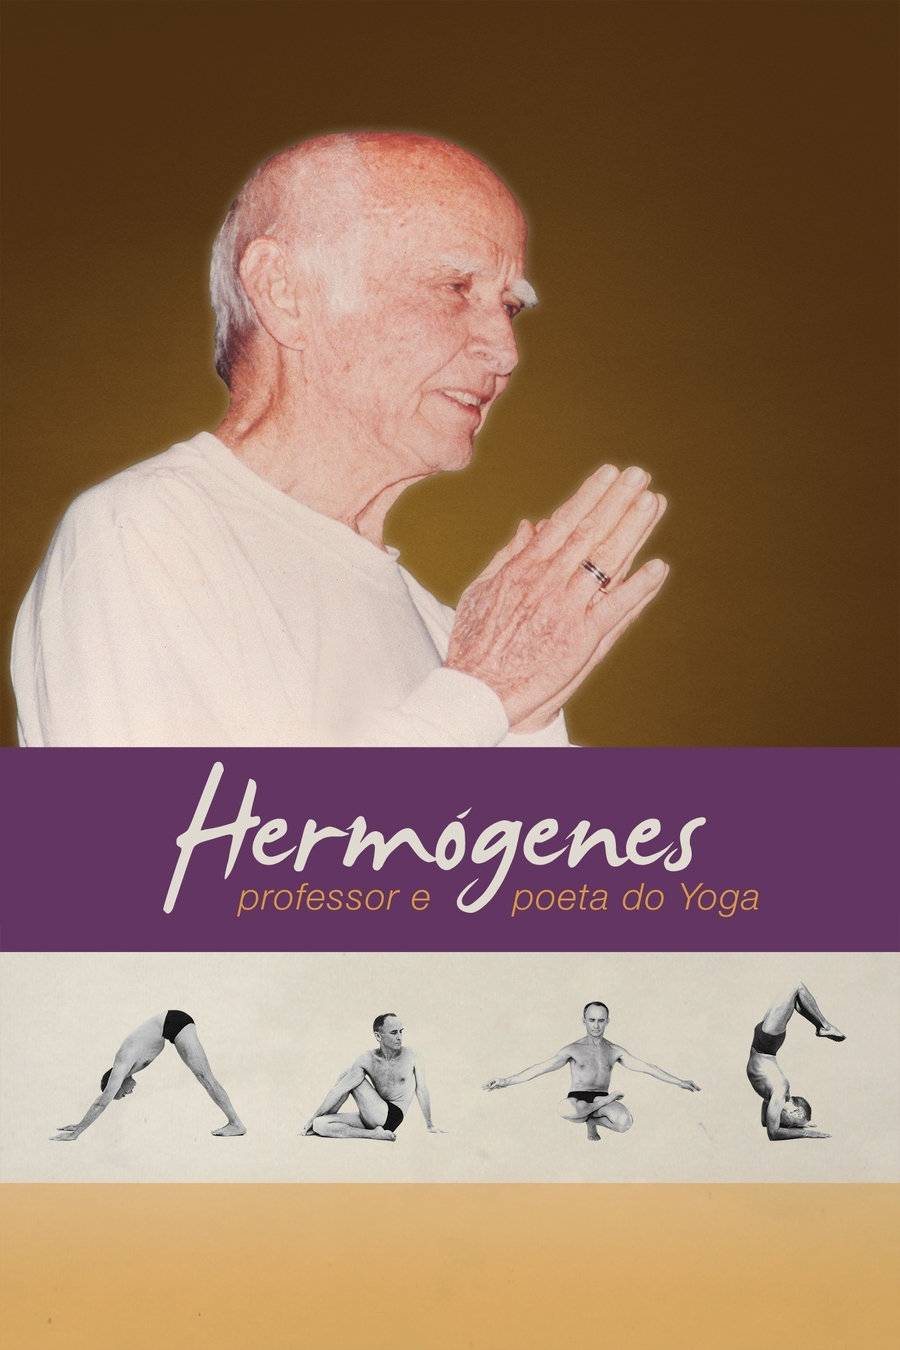 Hermógenes, Professor e Poeta do Yoga